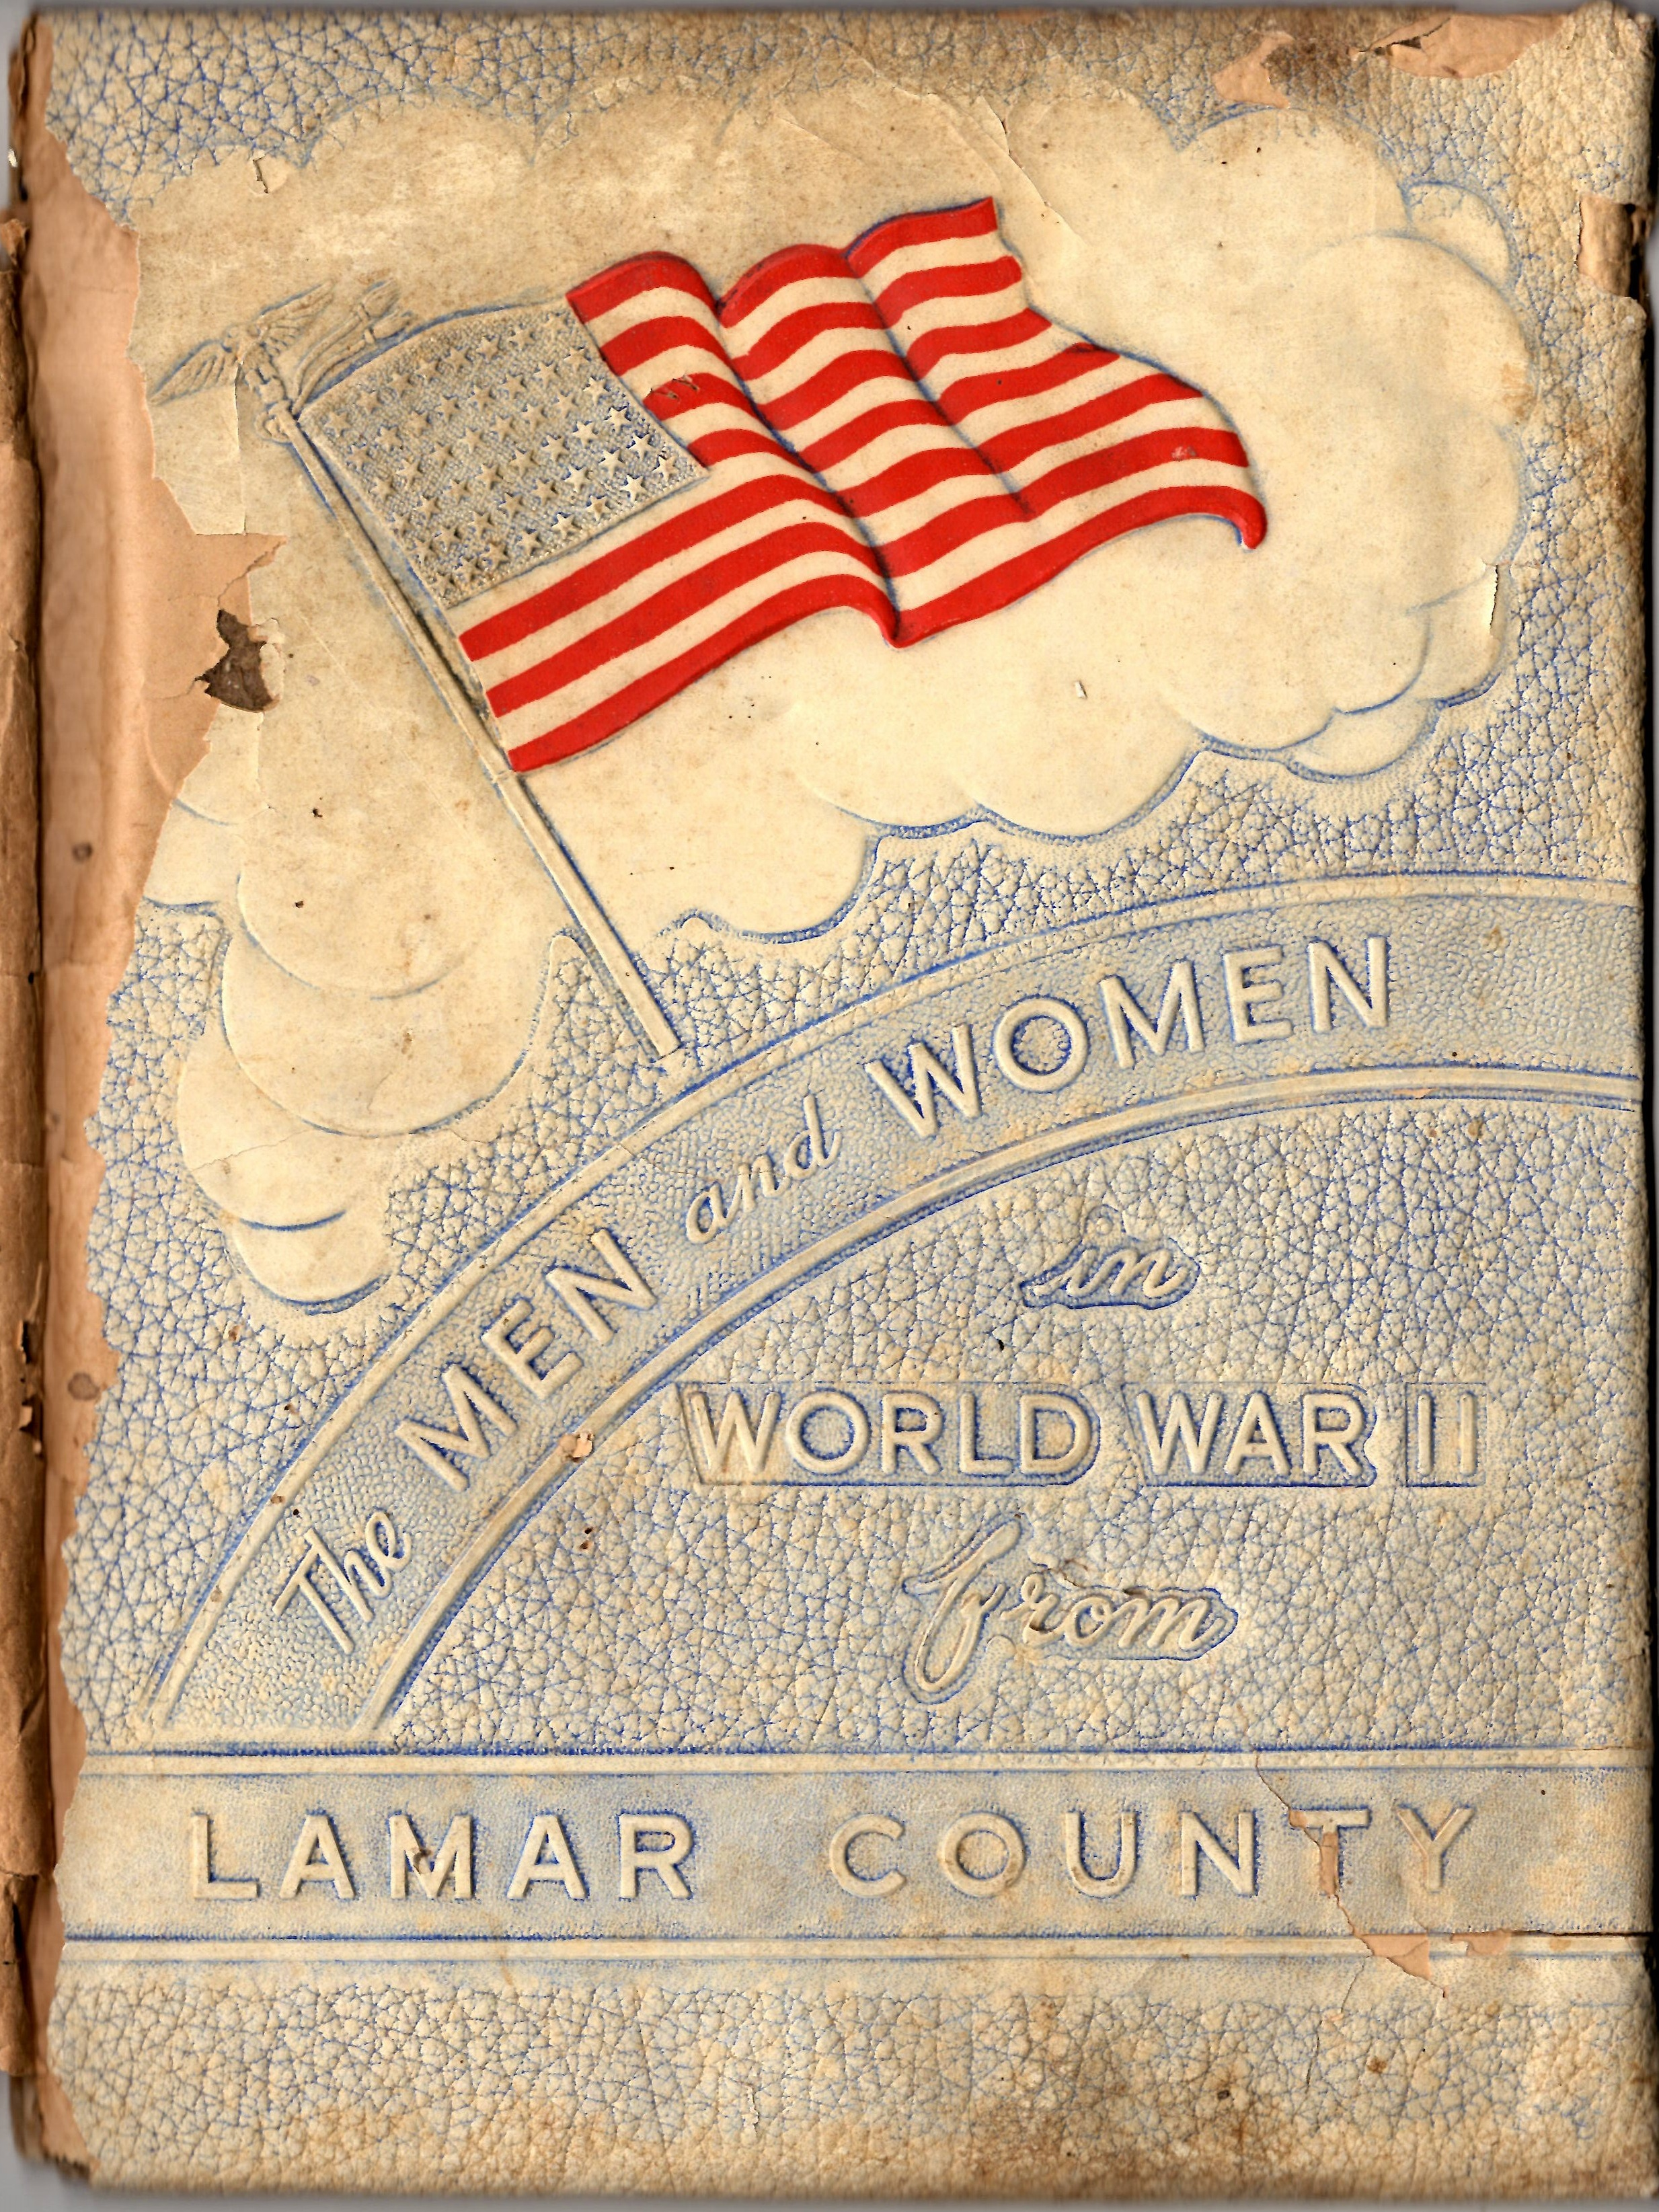 Men and women in the Armed Forces from Lamar County Texas WW2 WWII World War